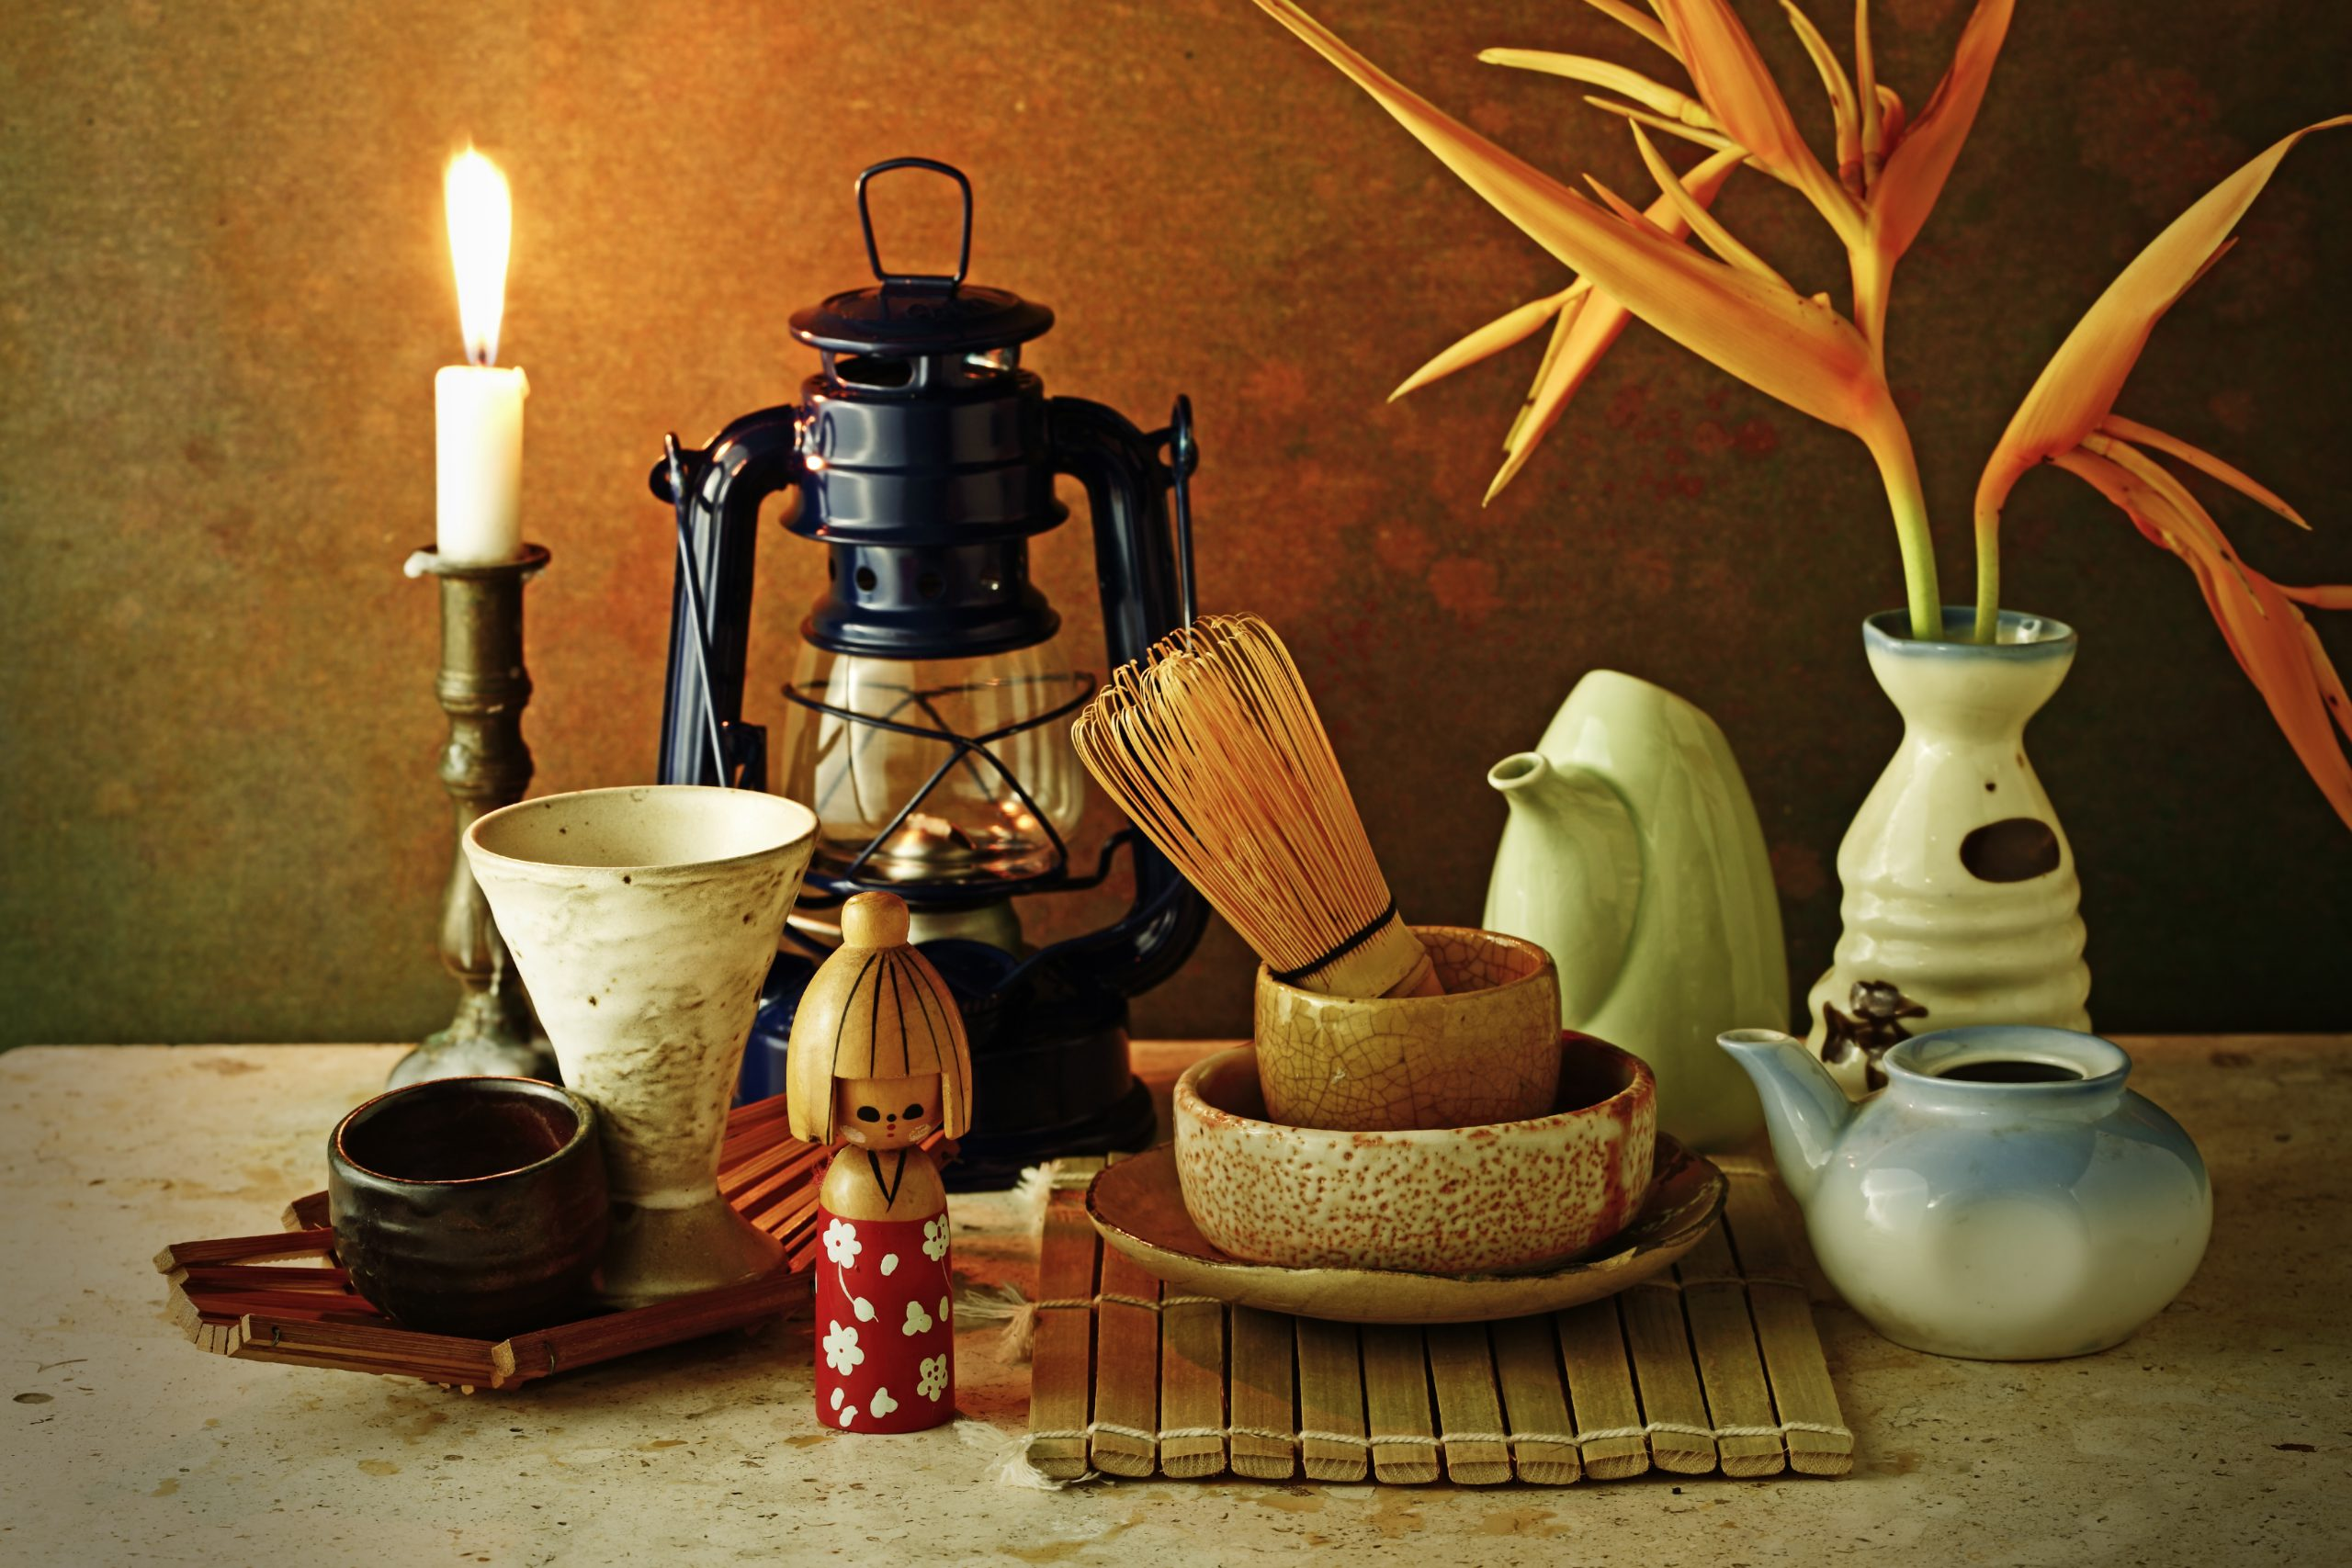 Join A Tradtional Tea Ceremony During The Kamakura Walking Tour And Tea Experience